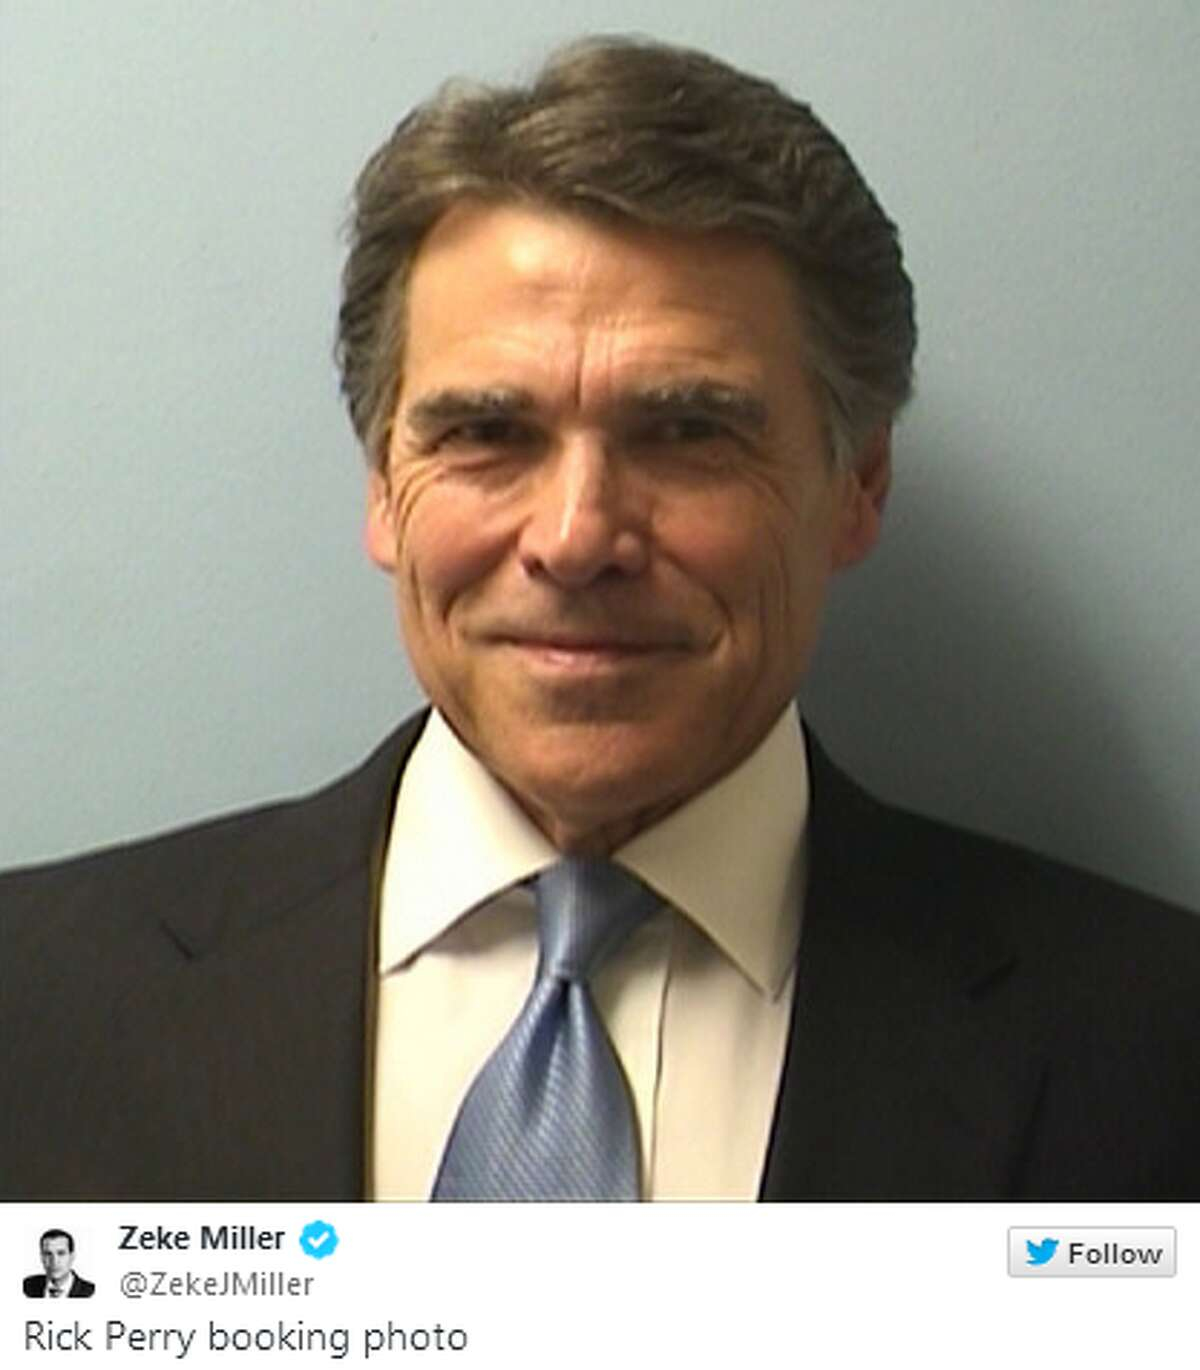 Here is Gov. Rick Perry's original booking photo. Keep clicking to see how the internet reacted. Credit: Twitter @ZekeJMiller